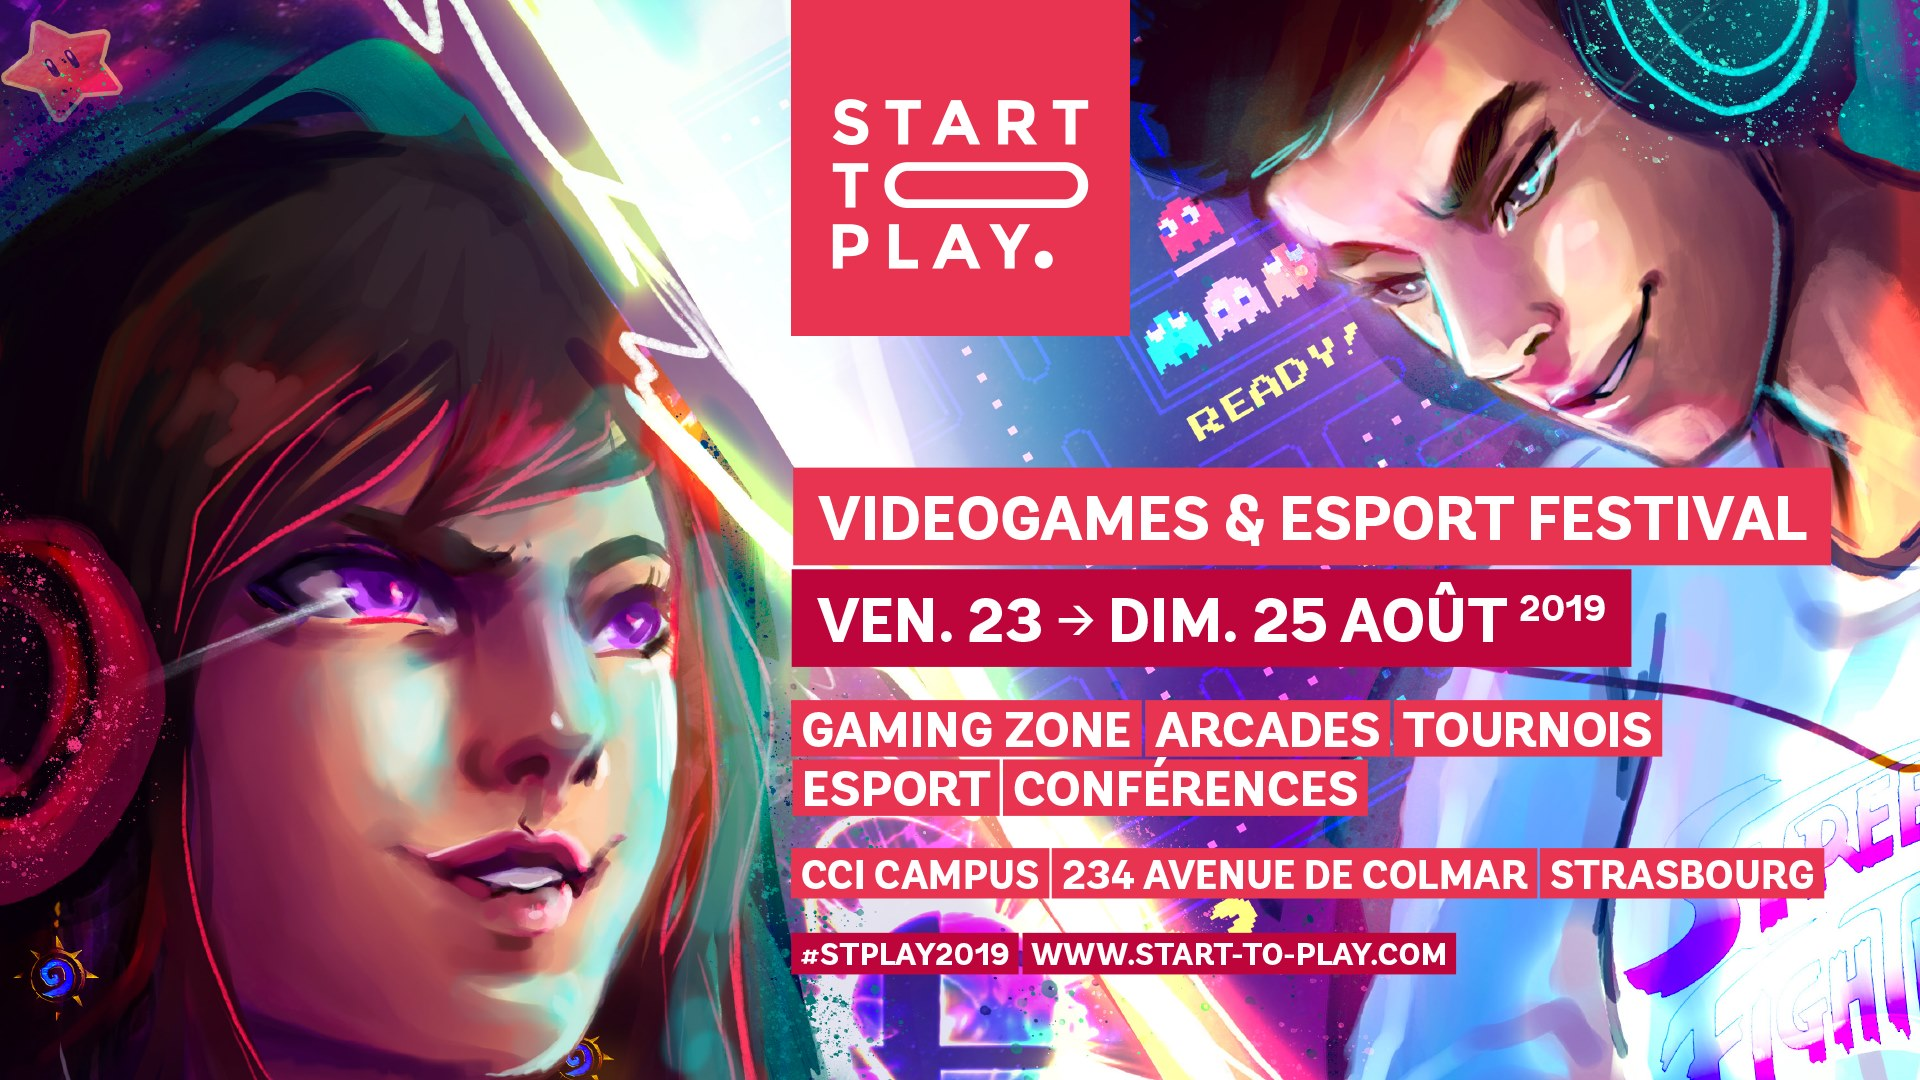 [ÉVÉNEMENT] Start To Play 2019 – Videogames & Esport Festival